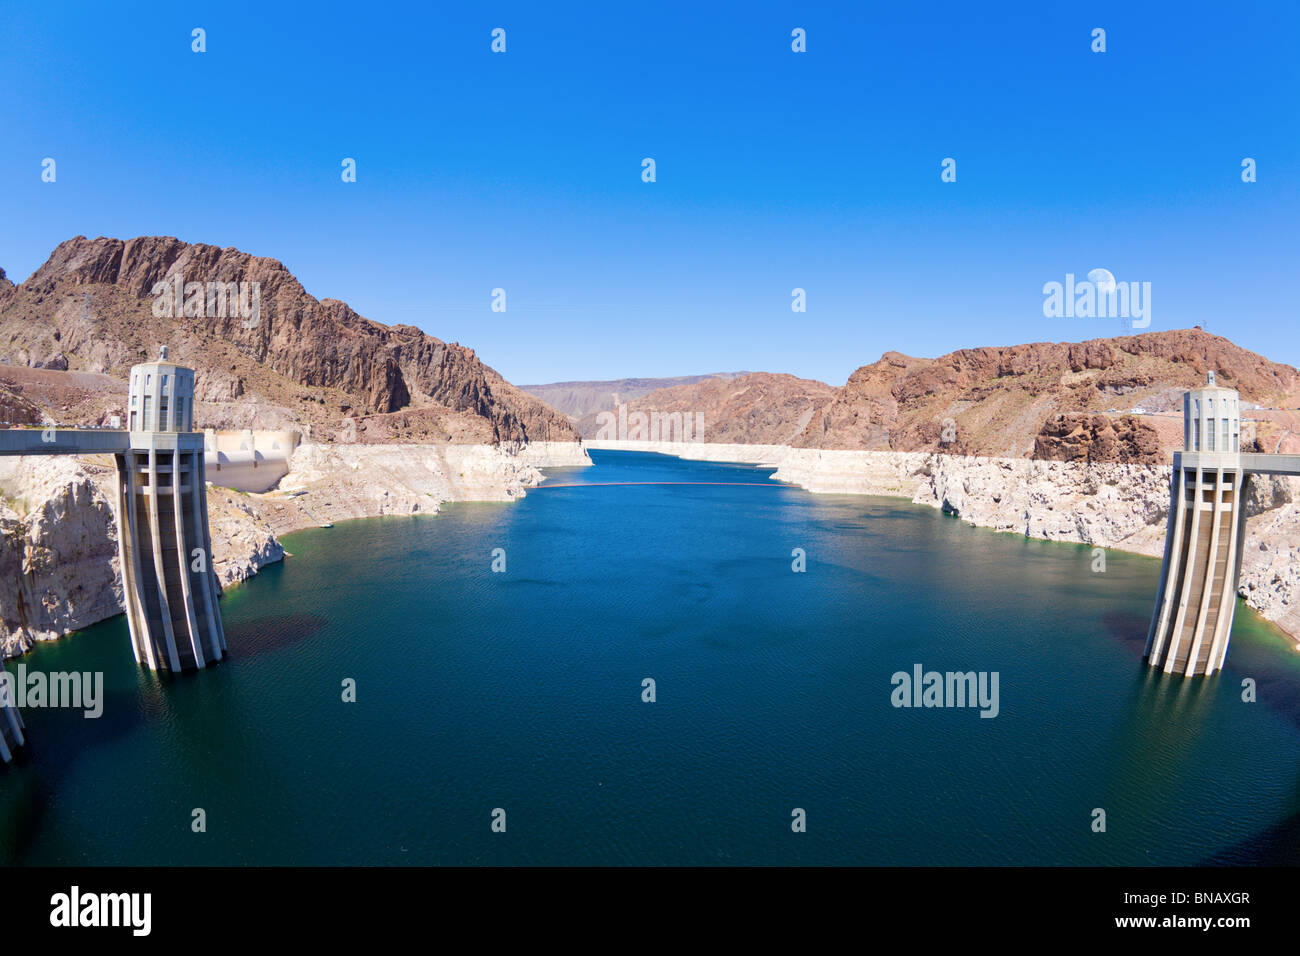 Lake Mead behind Hoover Dam Stock Photo